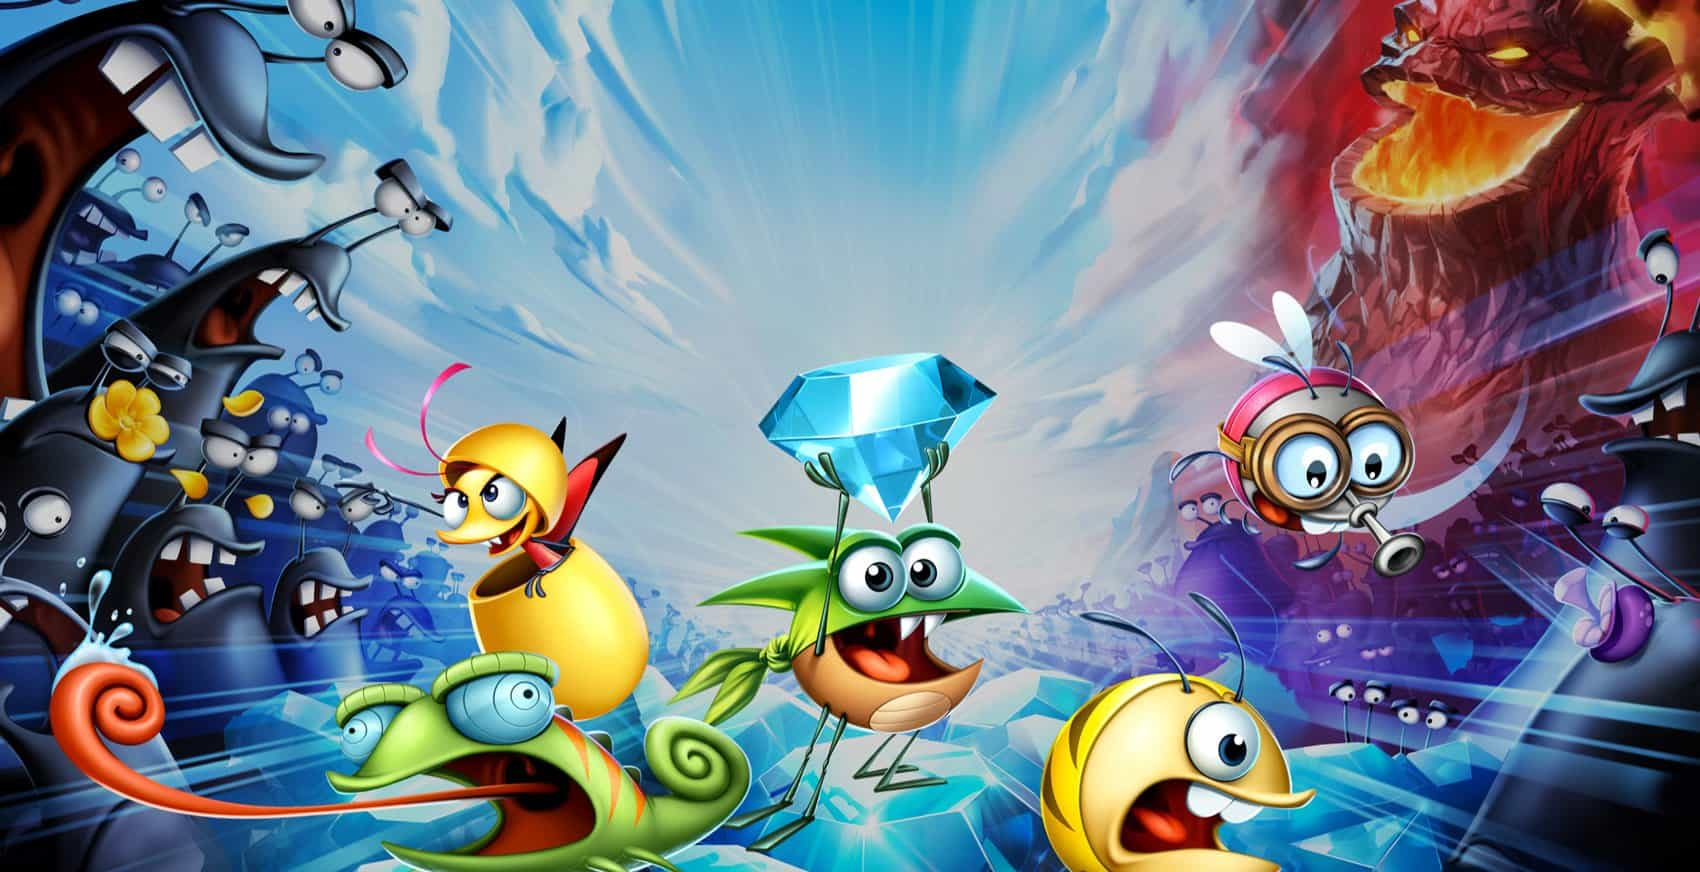 Playtika buys Seriously, the maker of Best Fiends game